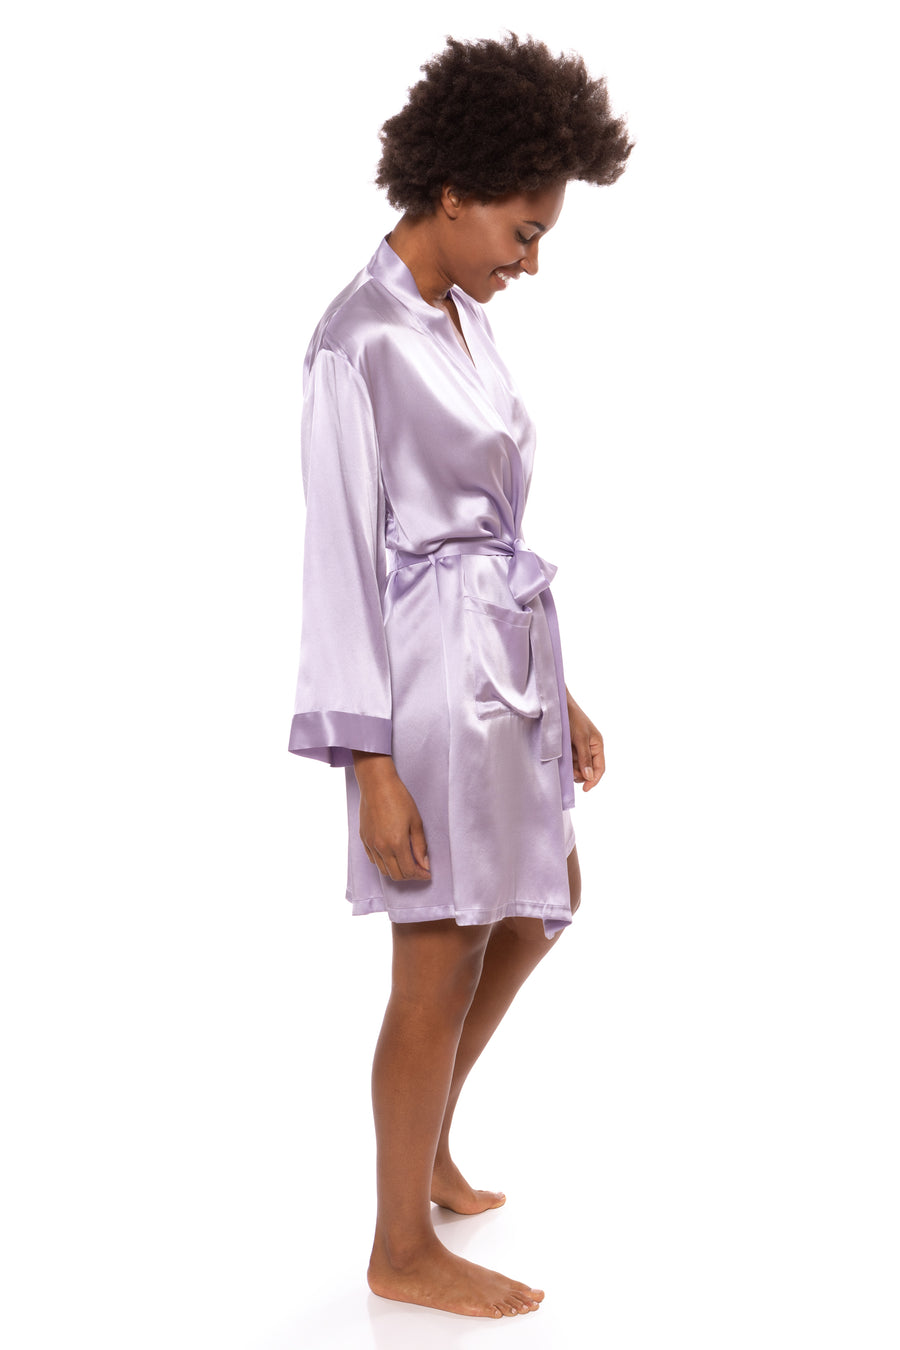 Midnight Jewel - Women's Silk Short Robe